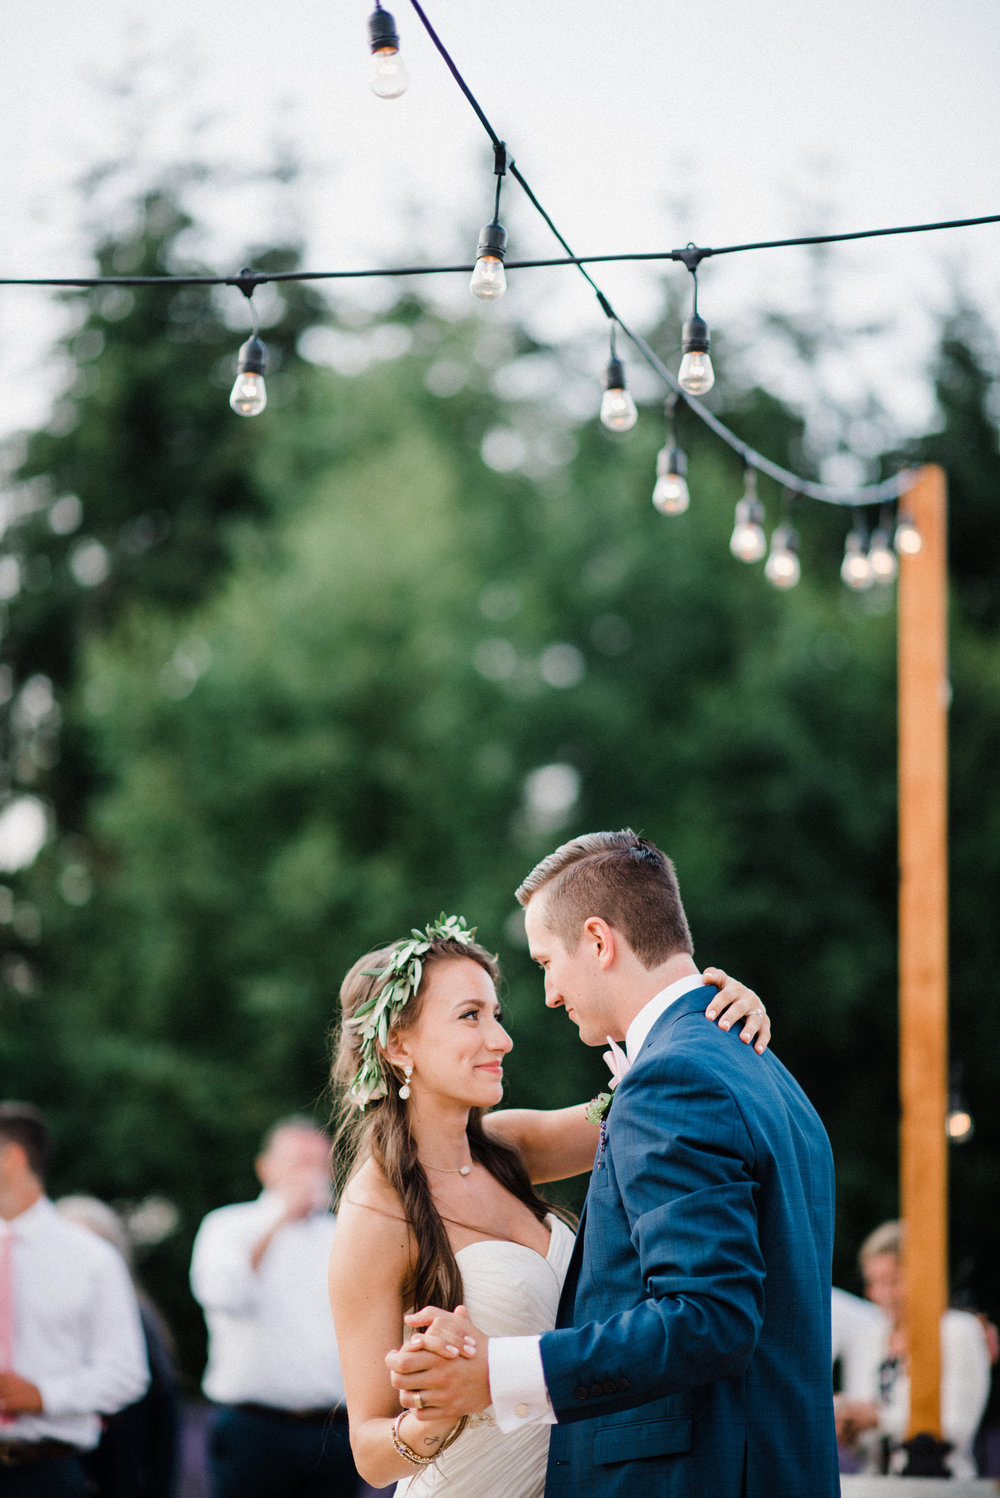 076-woodinville-lavendar-farm-wedding-with-golden-glowy-photos.jpg